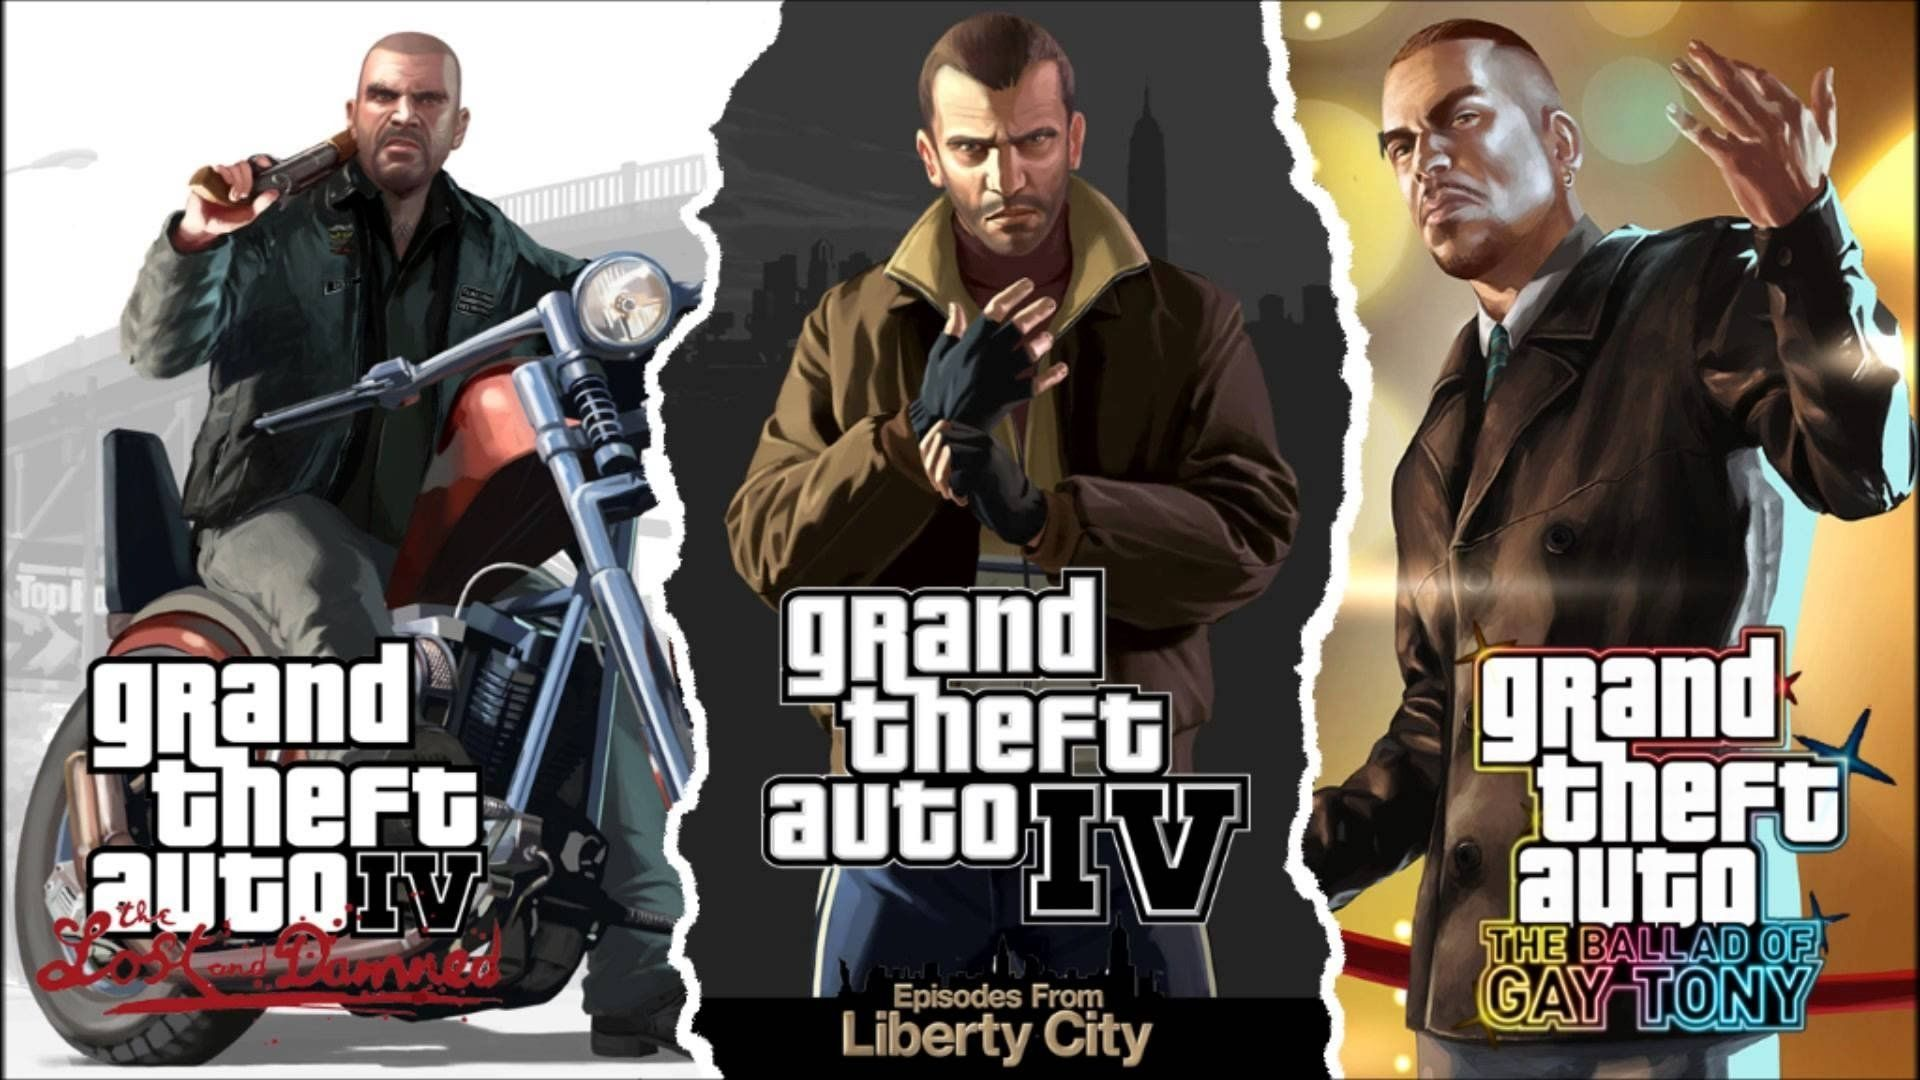 Grand Theft Auto Game Wallpaper Tag Download Hd Wallpaperhd